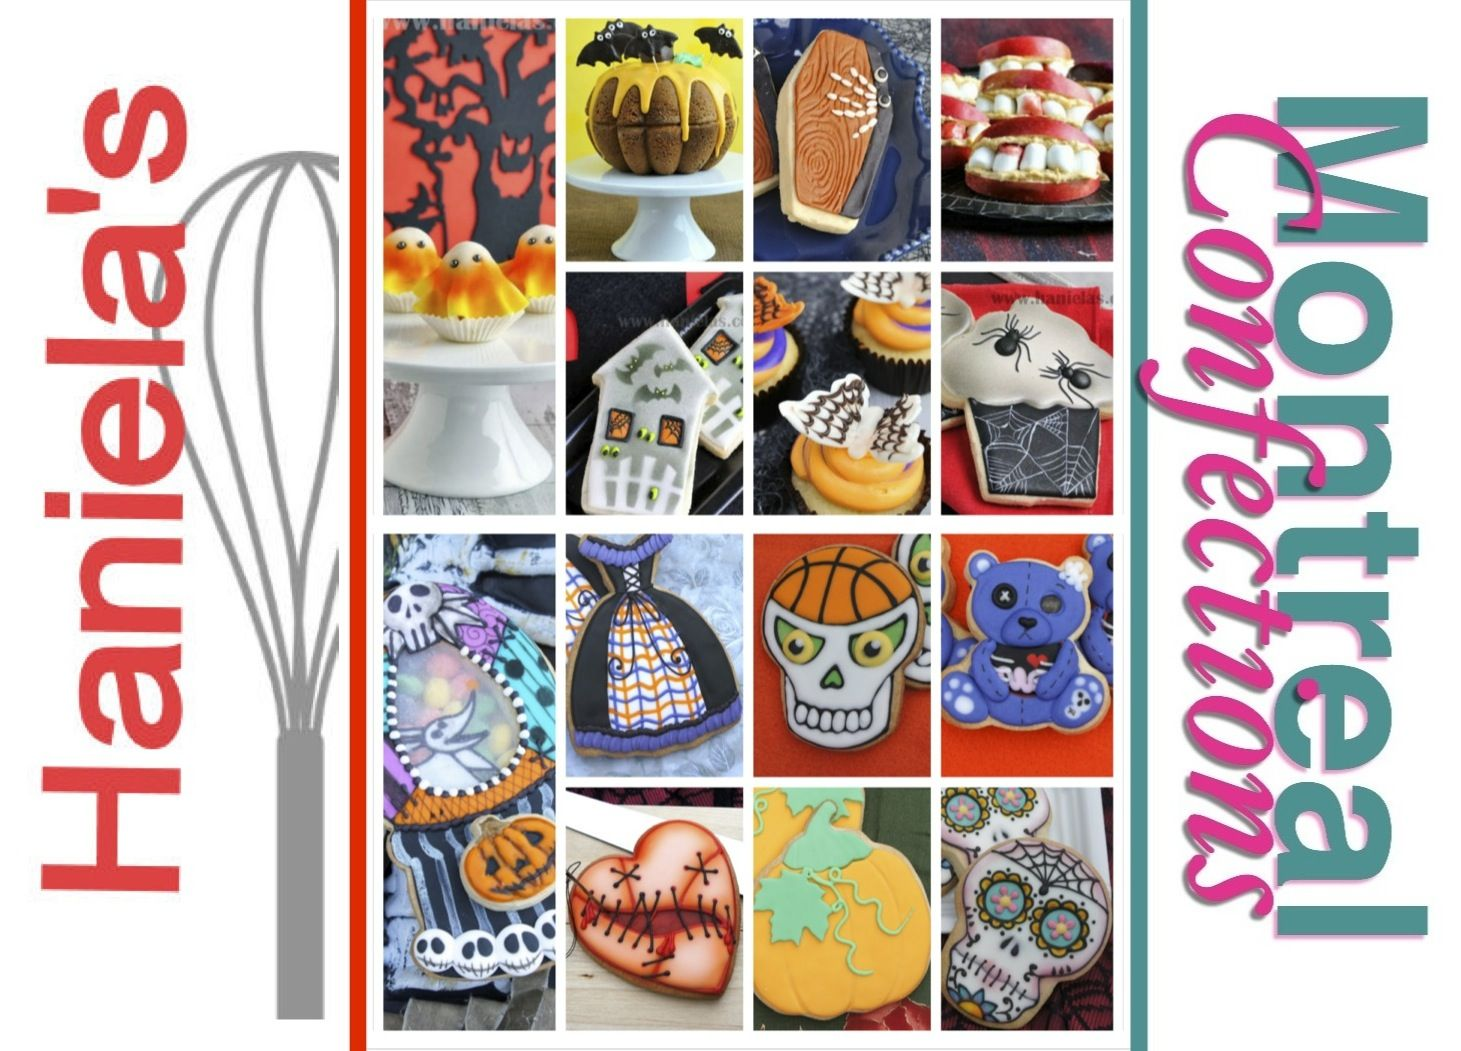 Compilation of 14 Halloween projects by Montreal Confections & Haniela's http://www.youtube.com/playlist?list=PLQz8LwCpApWQpT5UPhOvIgmIIaXGtrGa_